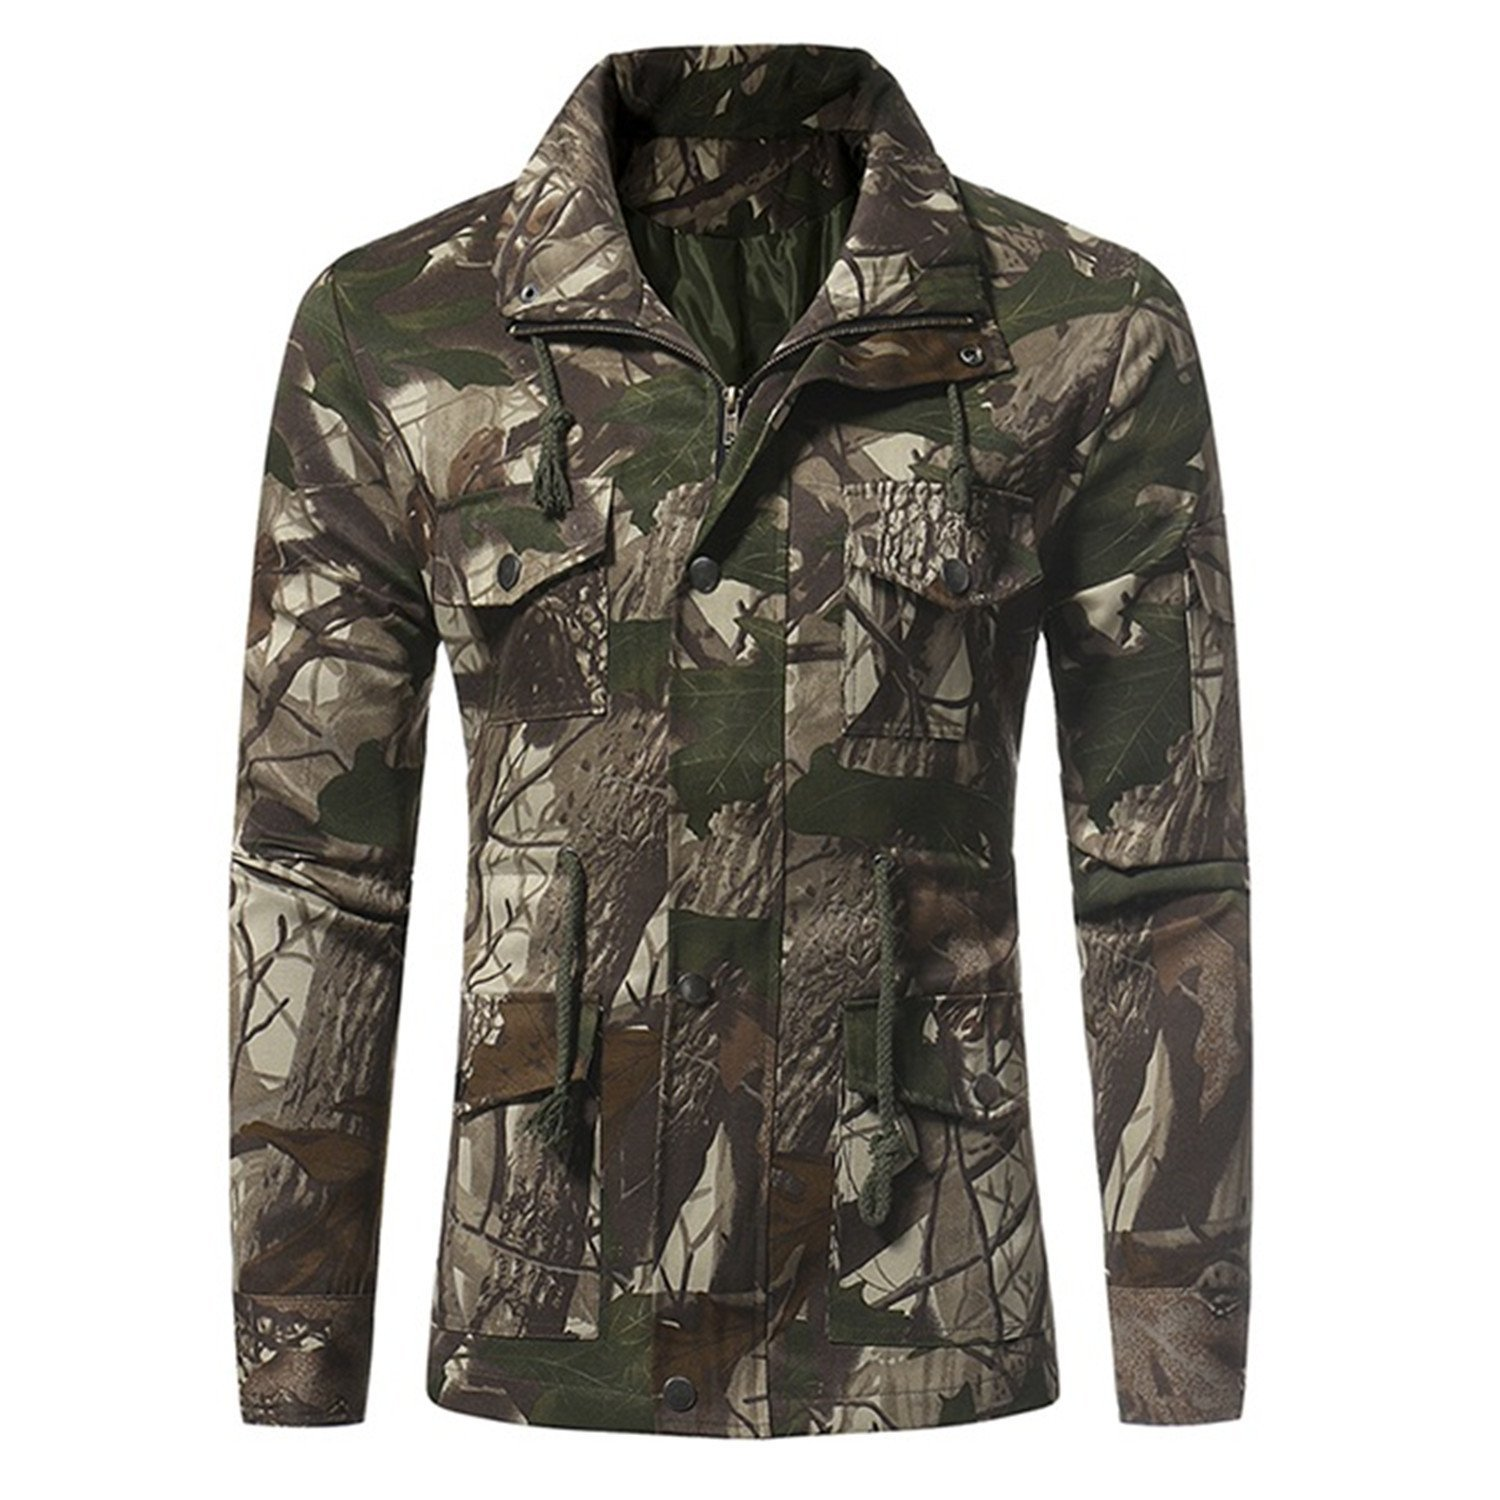 d2f8a440edd Get Quotations · Winter Bomber Jacket Men Military Male Jacket Camouflage  Zipper Coat Pockets Waist Mens Basic Army Green